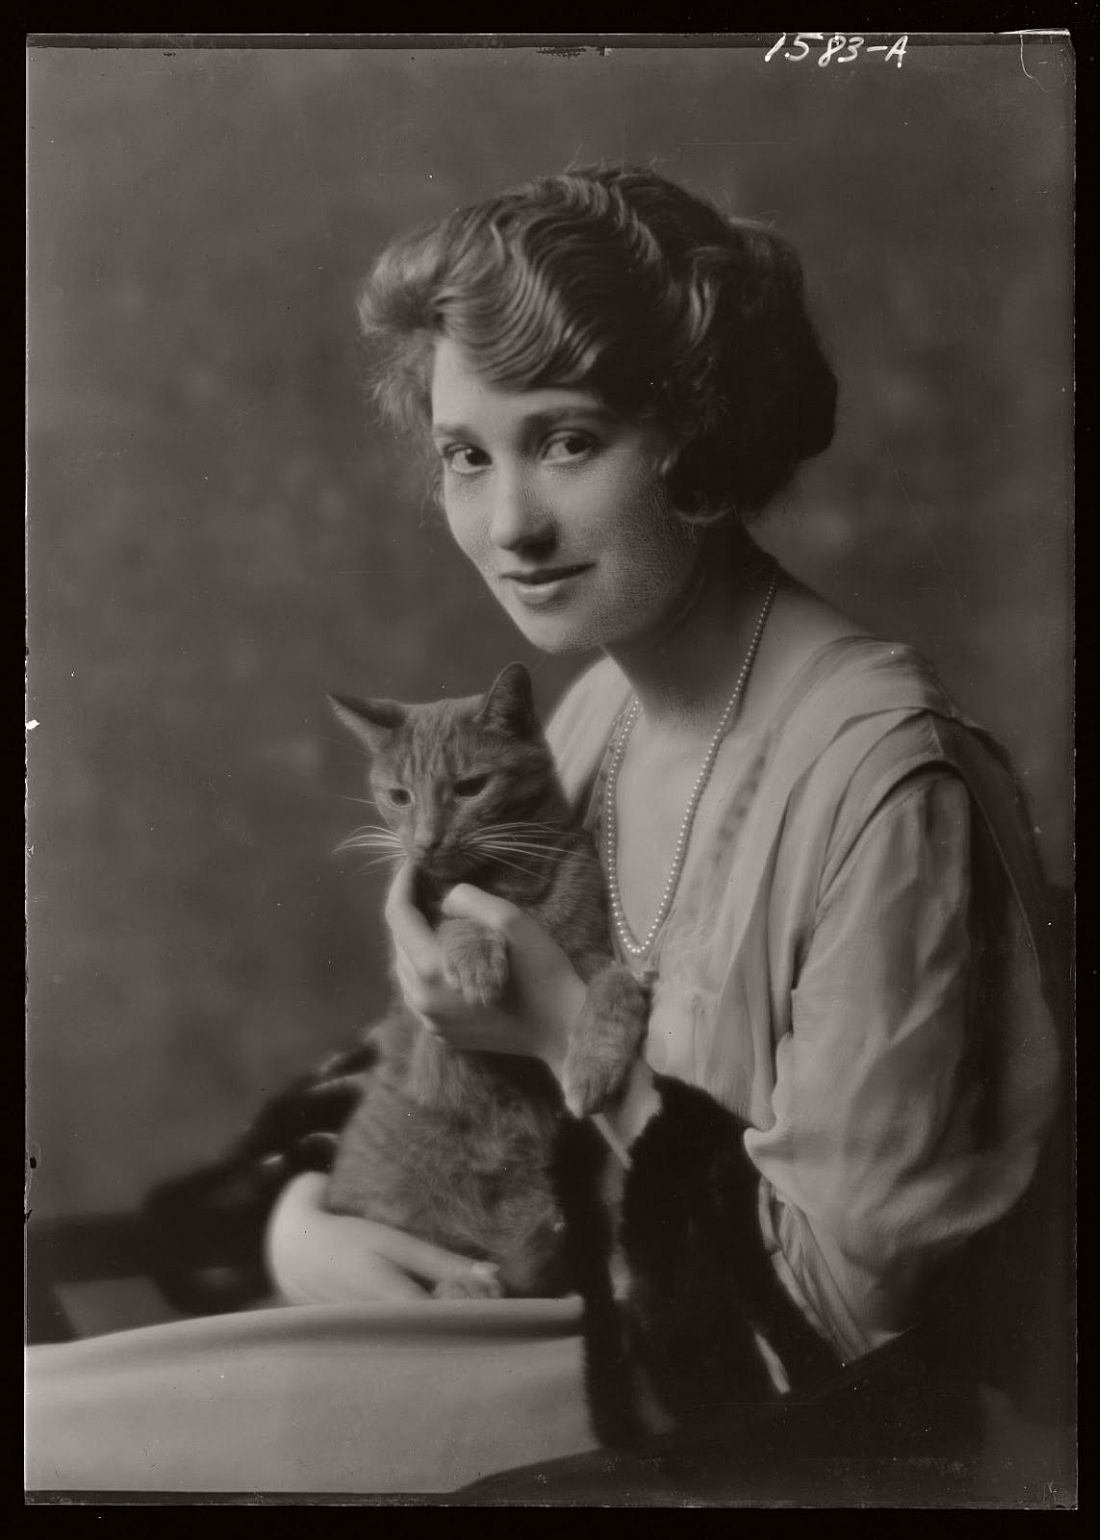 arnold-genthe-1910s-vintage-studio-portraits-of-girls-with-cat-22